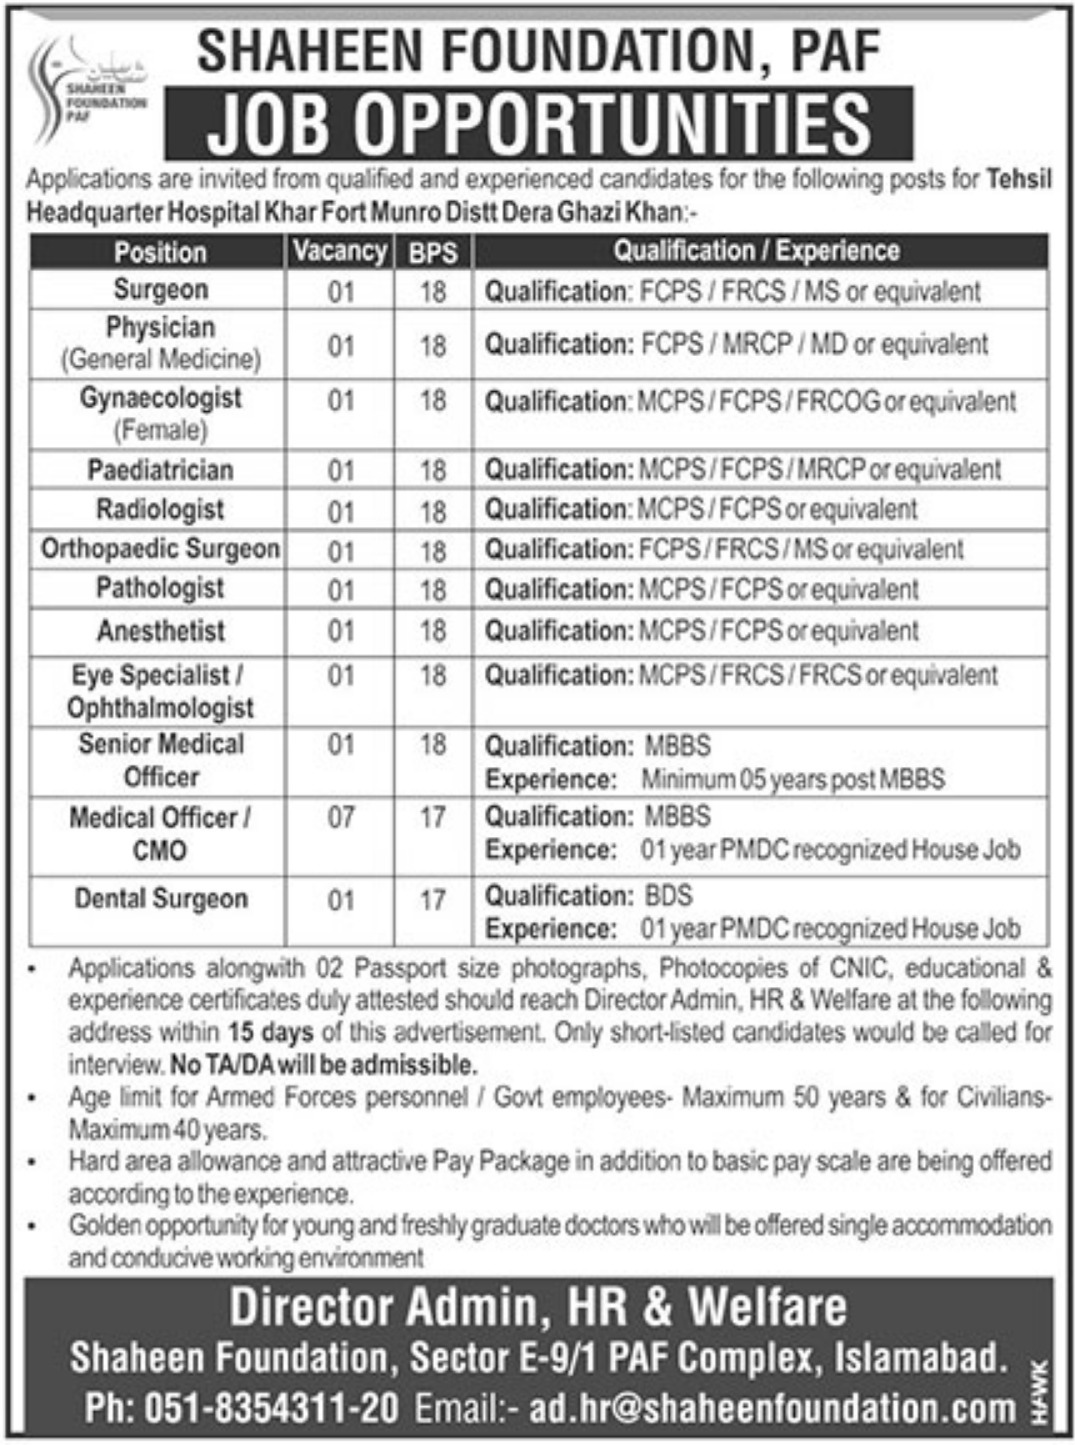 Shaheen Foundation PAF Jobs 2019 DG Khan